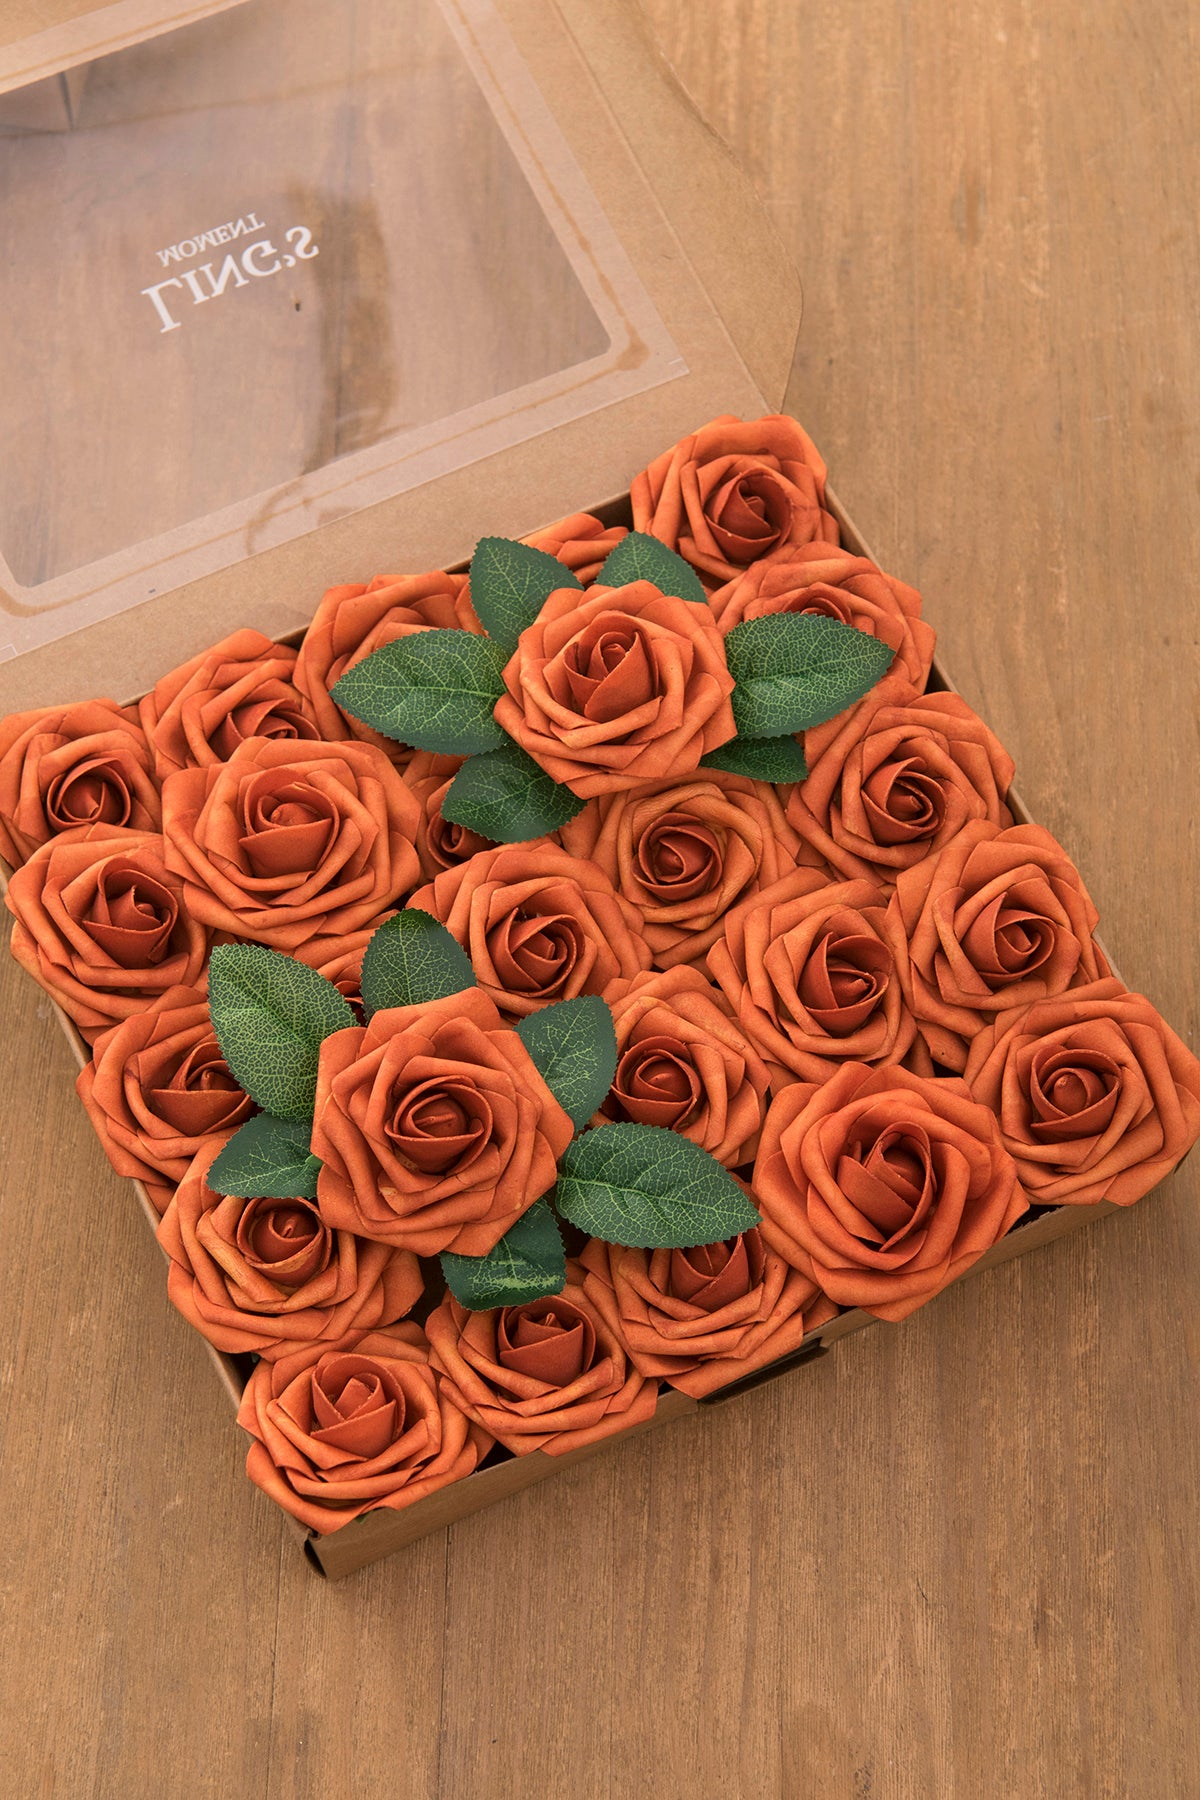 Foam Rose with Stem 25/50pcs - 33 Colors - Ling's moment